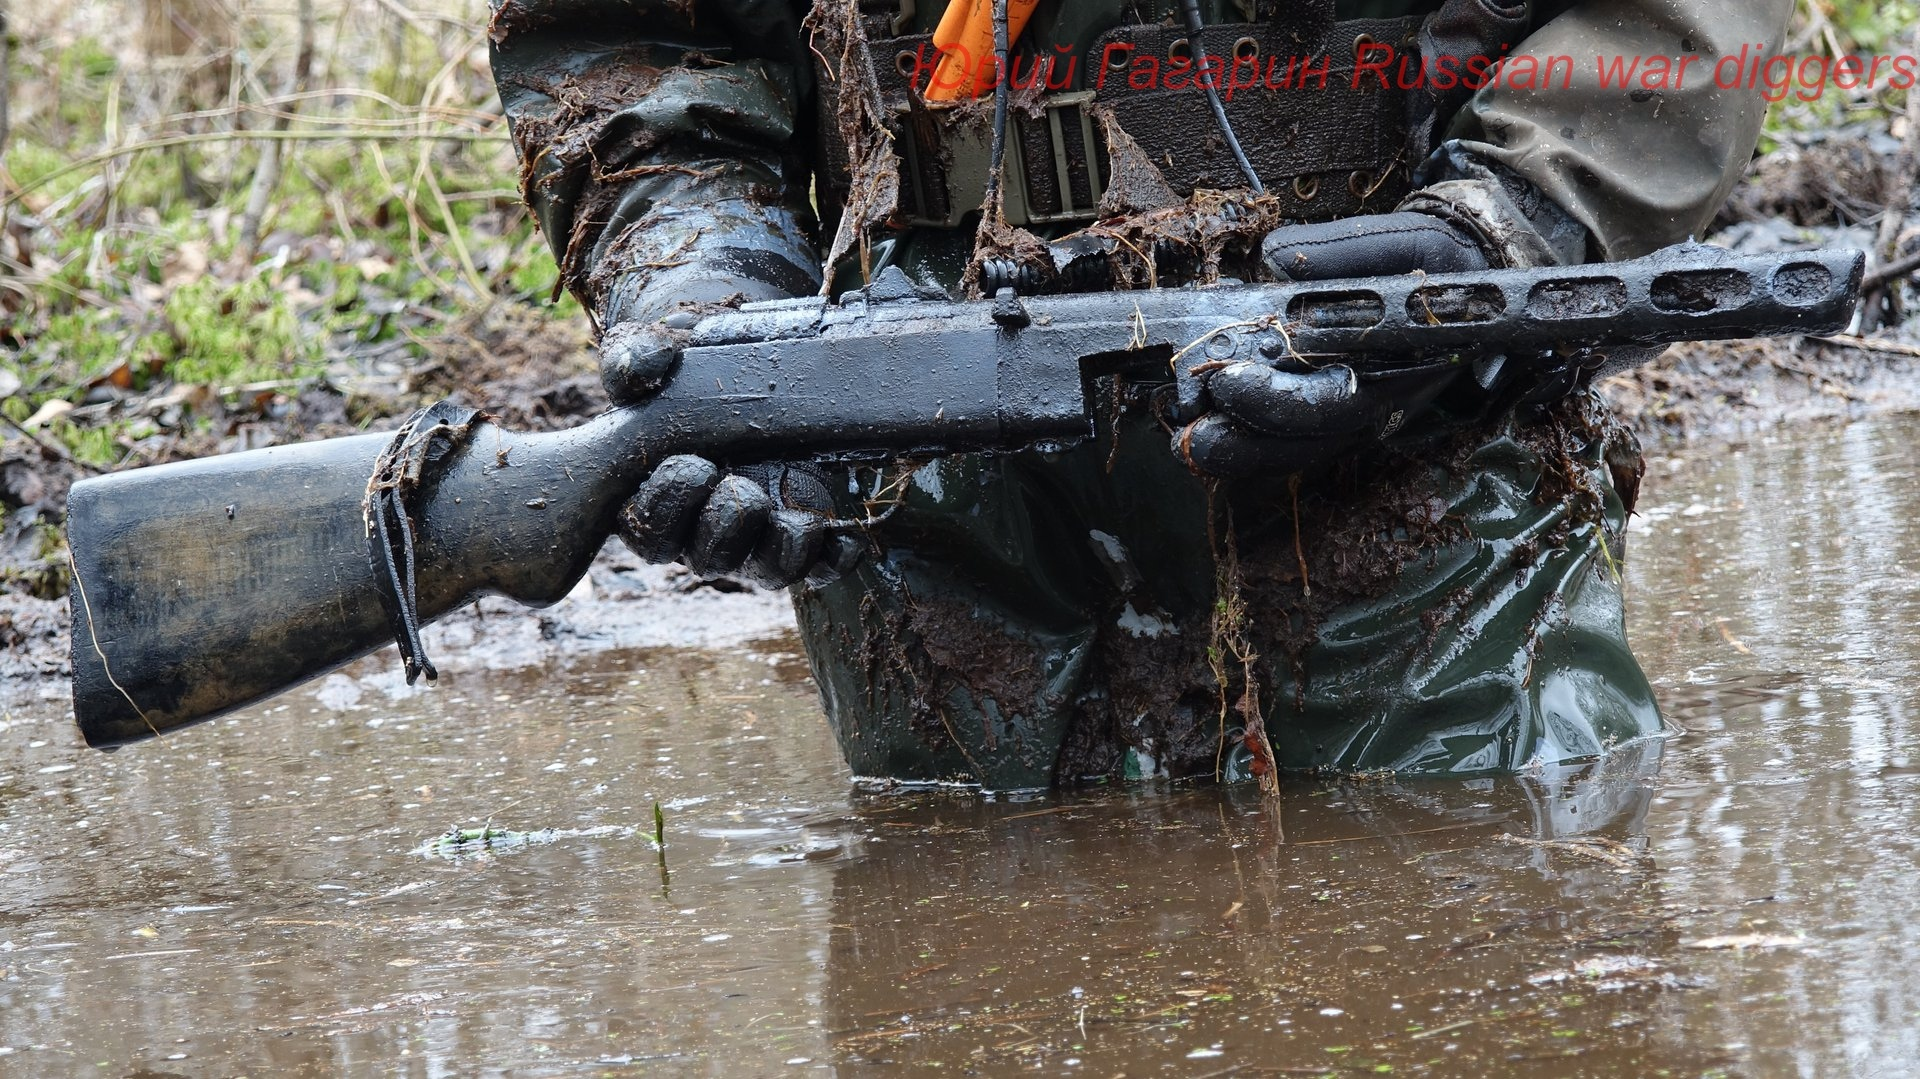 PPSh-41 found in a swamp using a metal detector